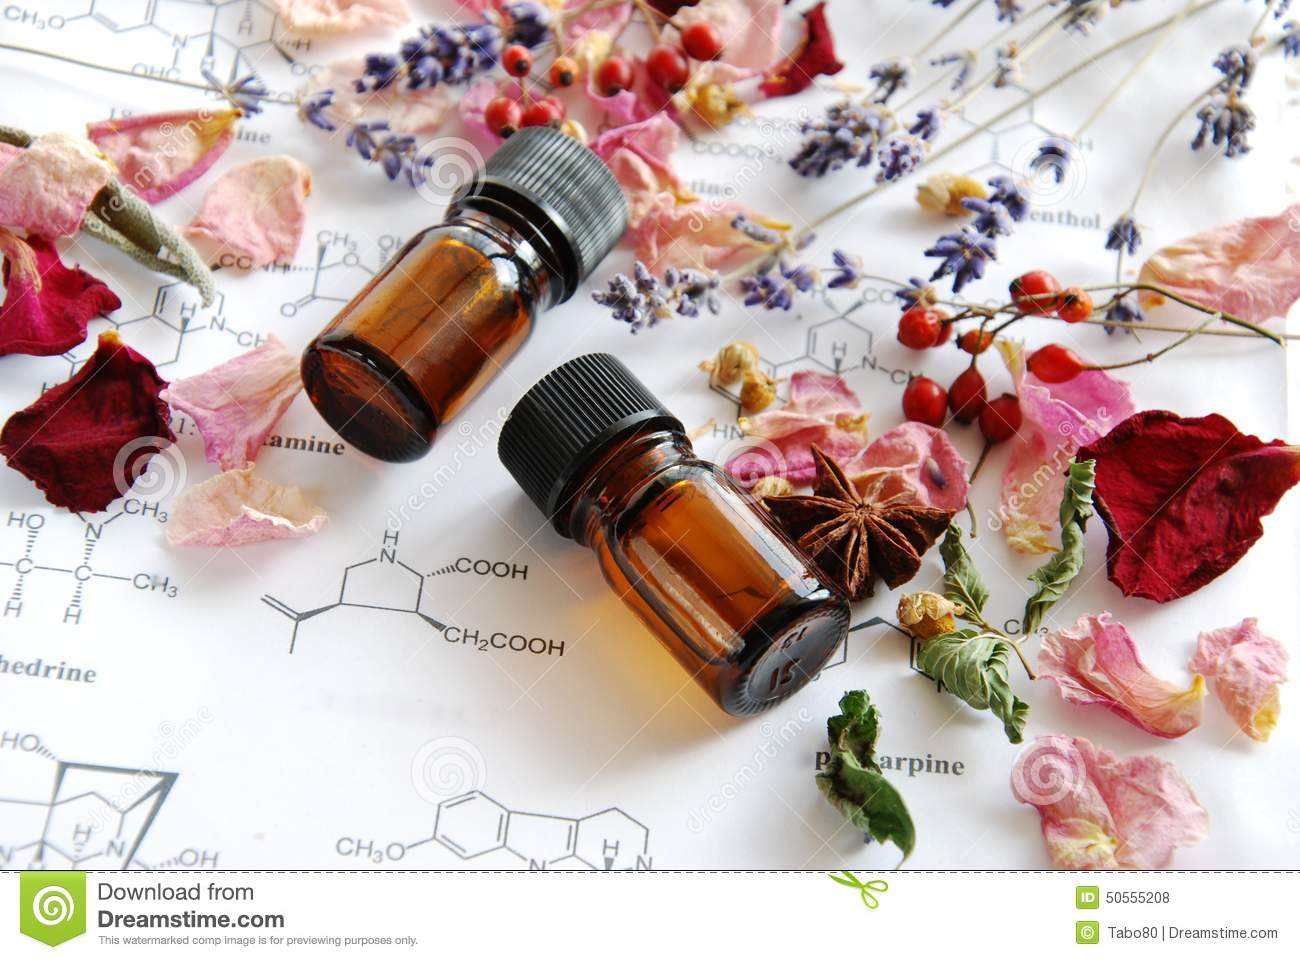 Aromatherapy and science